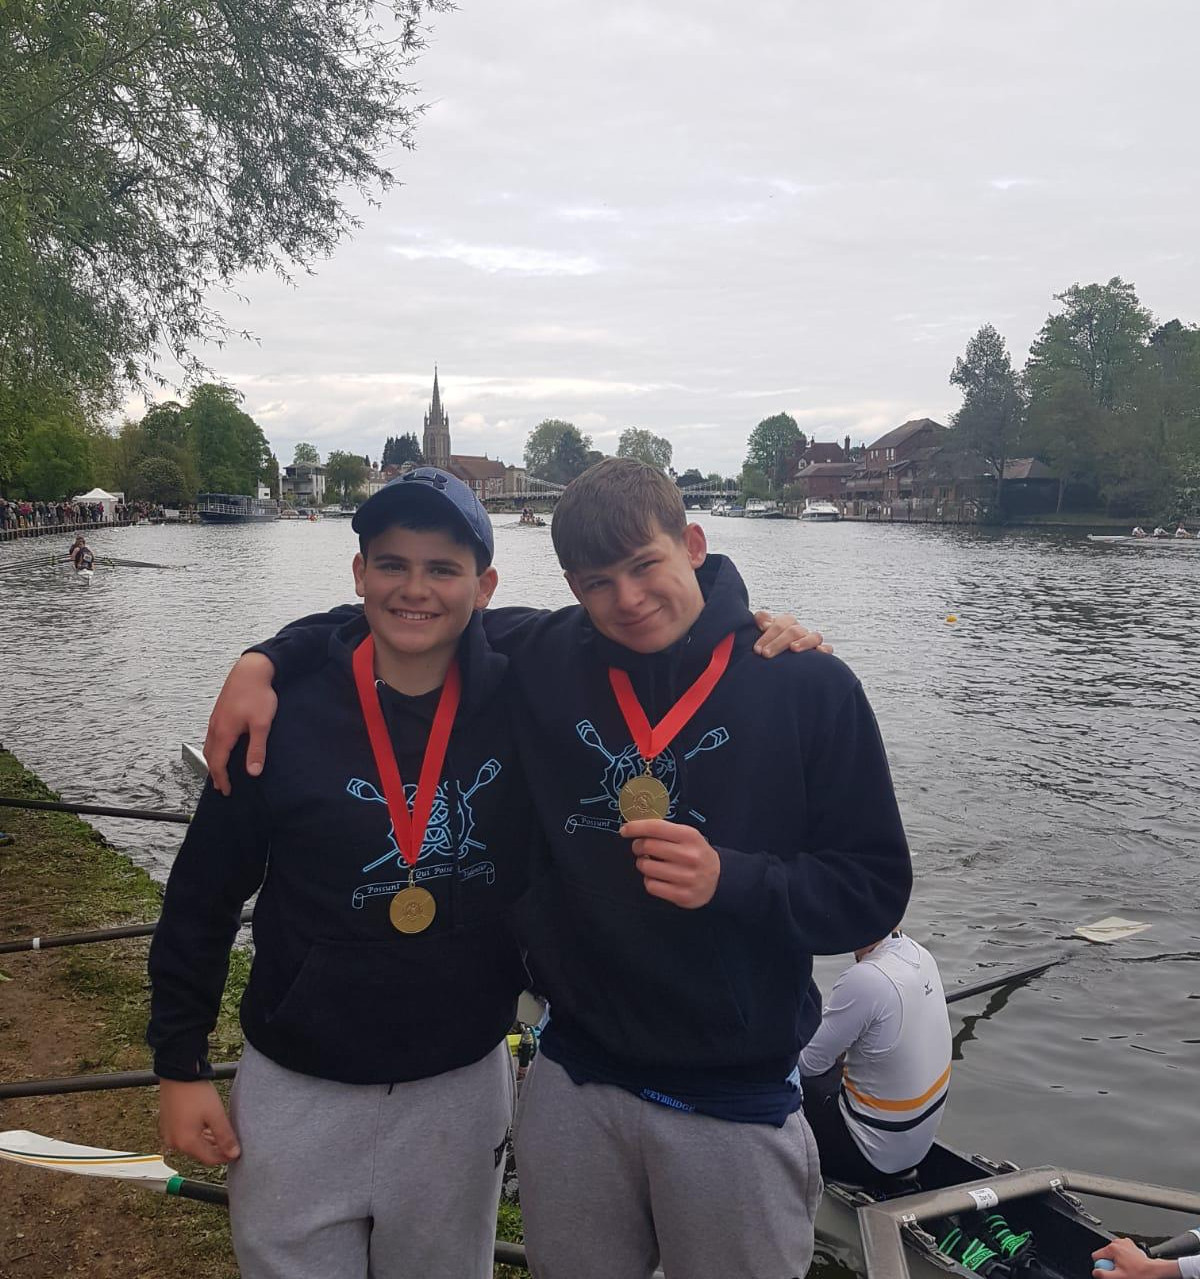 James and Cullen win the J14.2x (B) at Marlow Spring Regatta